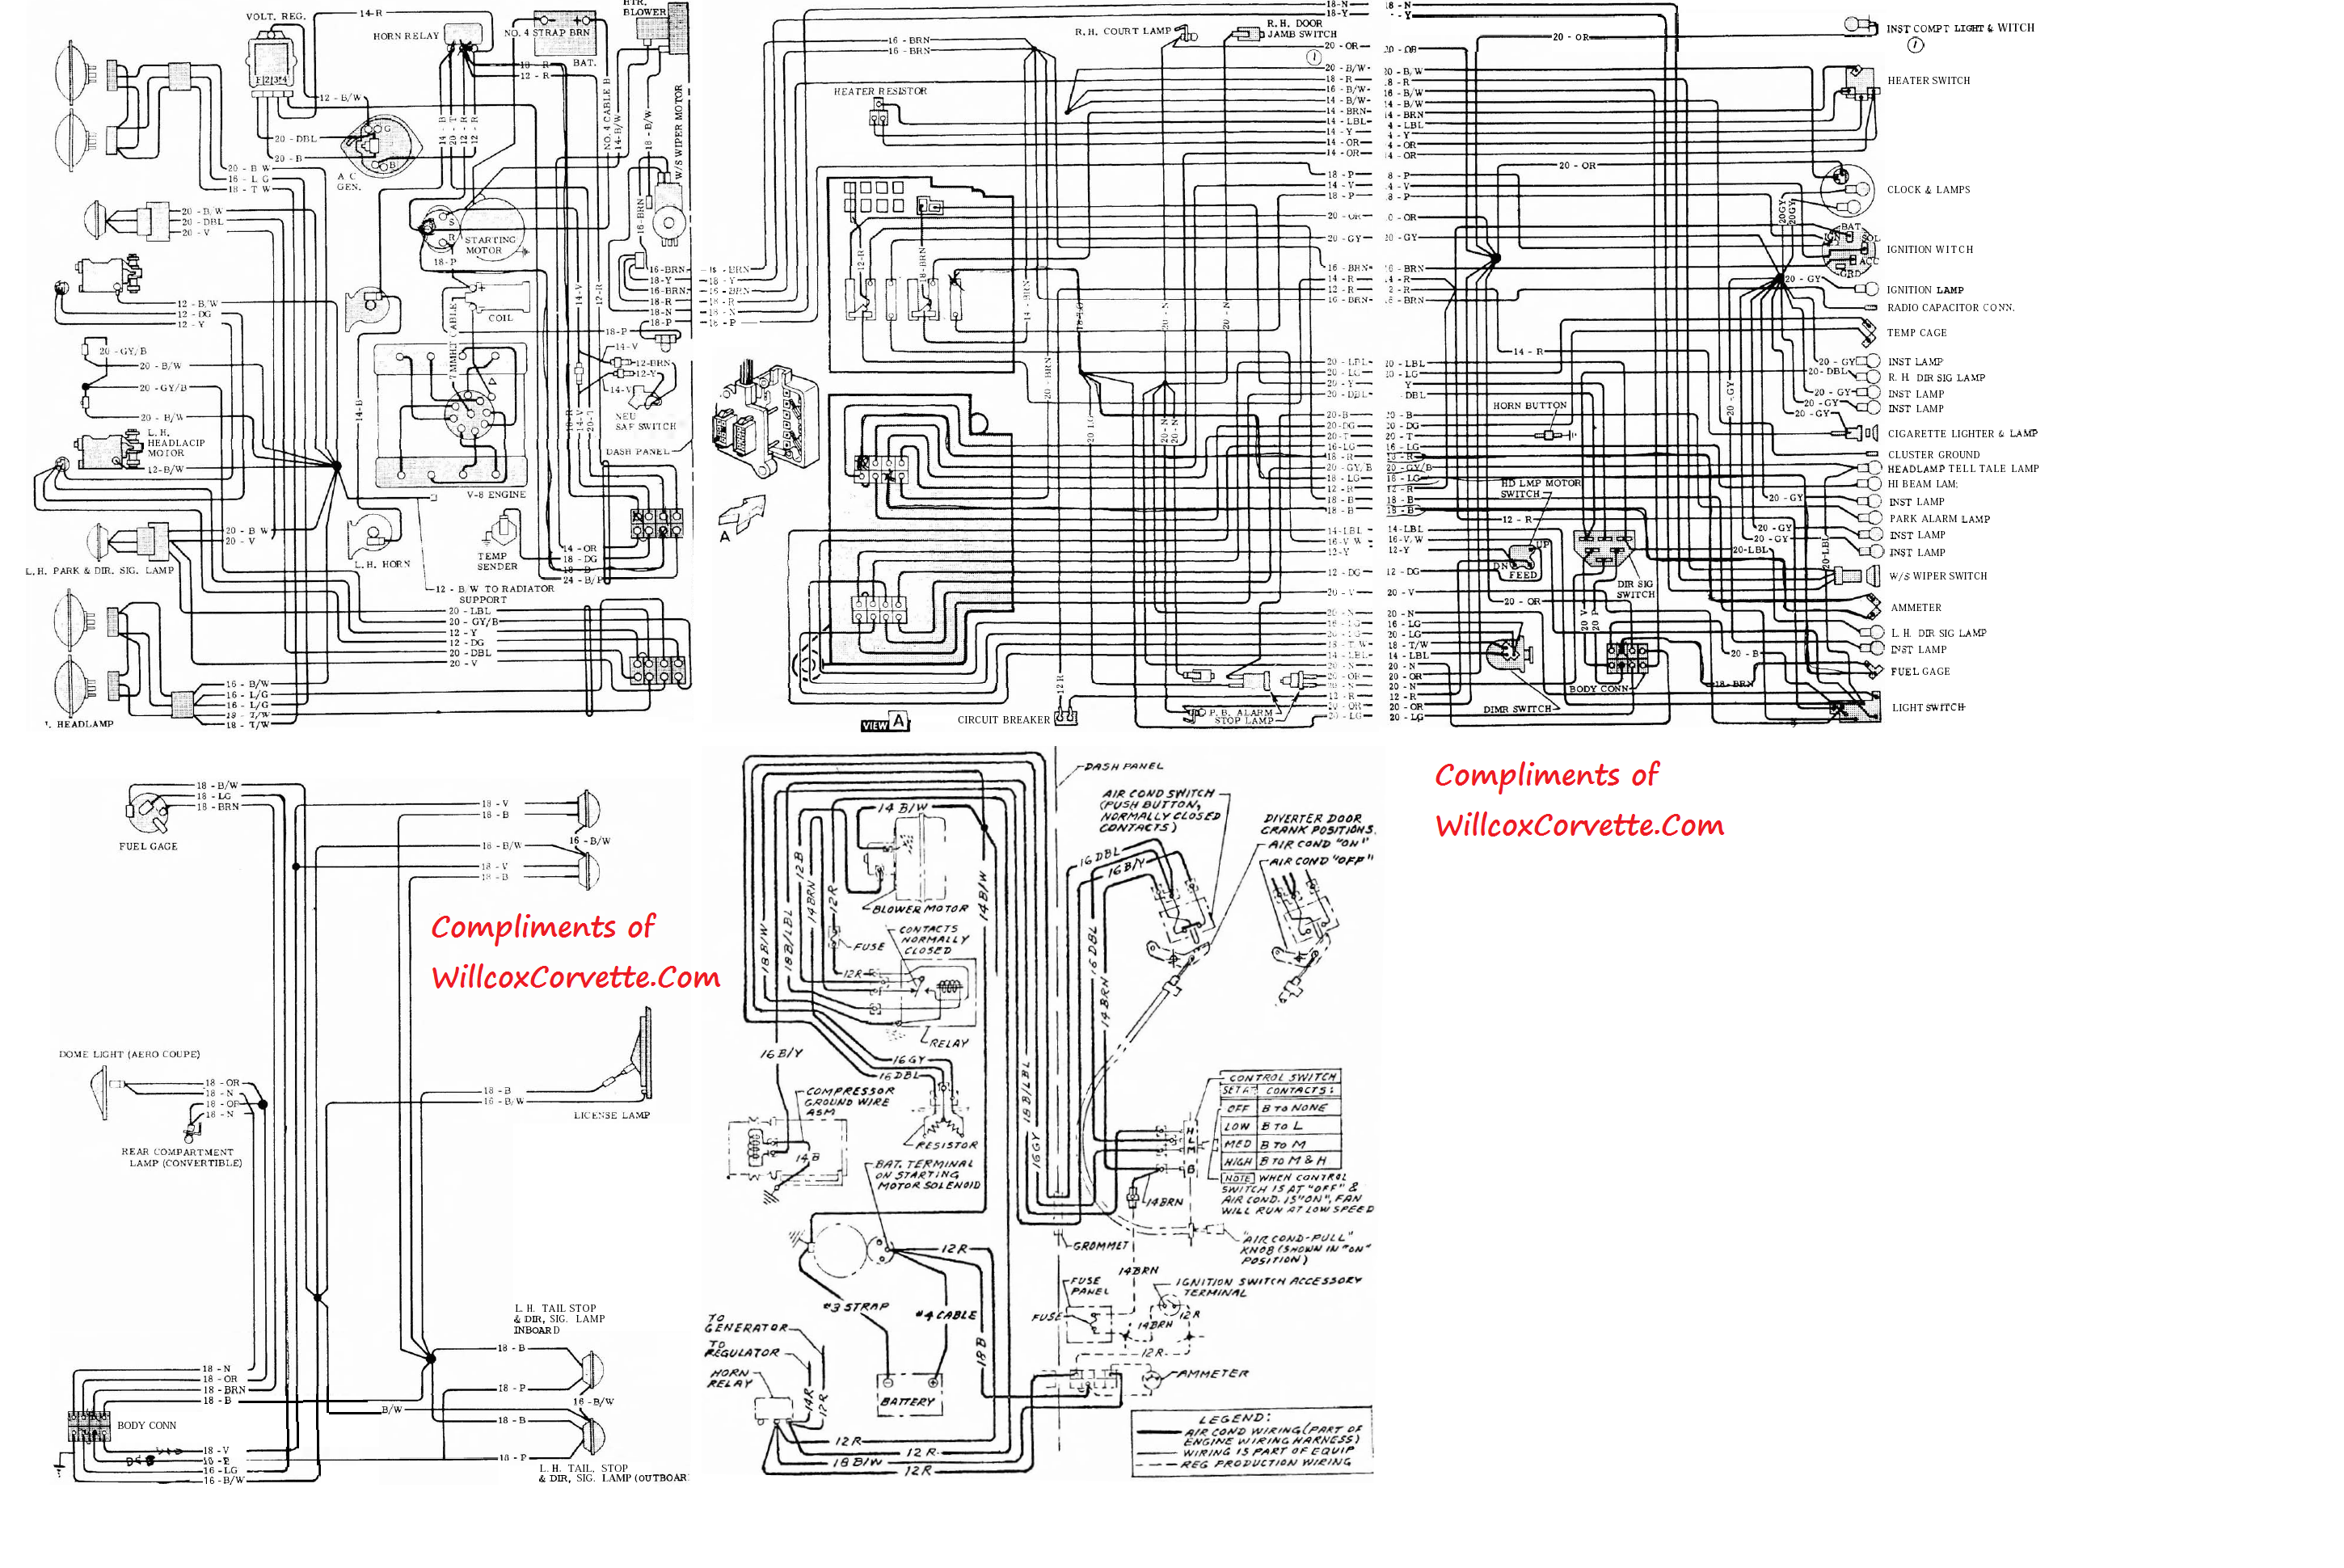 1963 Corvette Tracer Wiring Diagram Tracer Schematic 1963 corvette tracer wiring diagram tracer schematic willcox 1963 ford wiring diagram at crackthecode.co